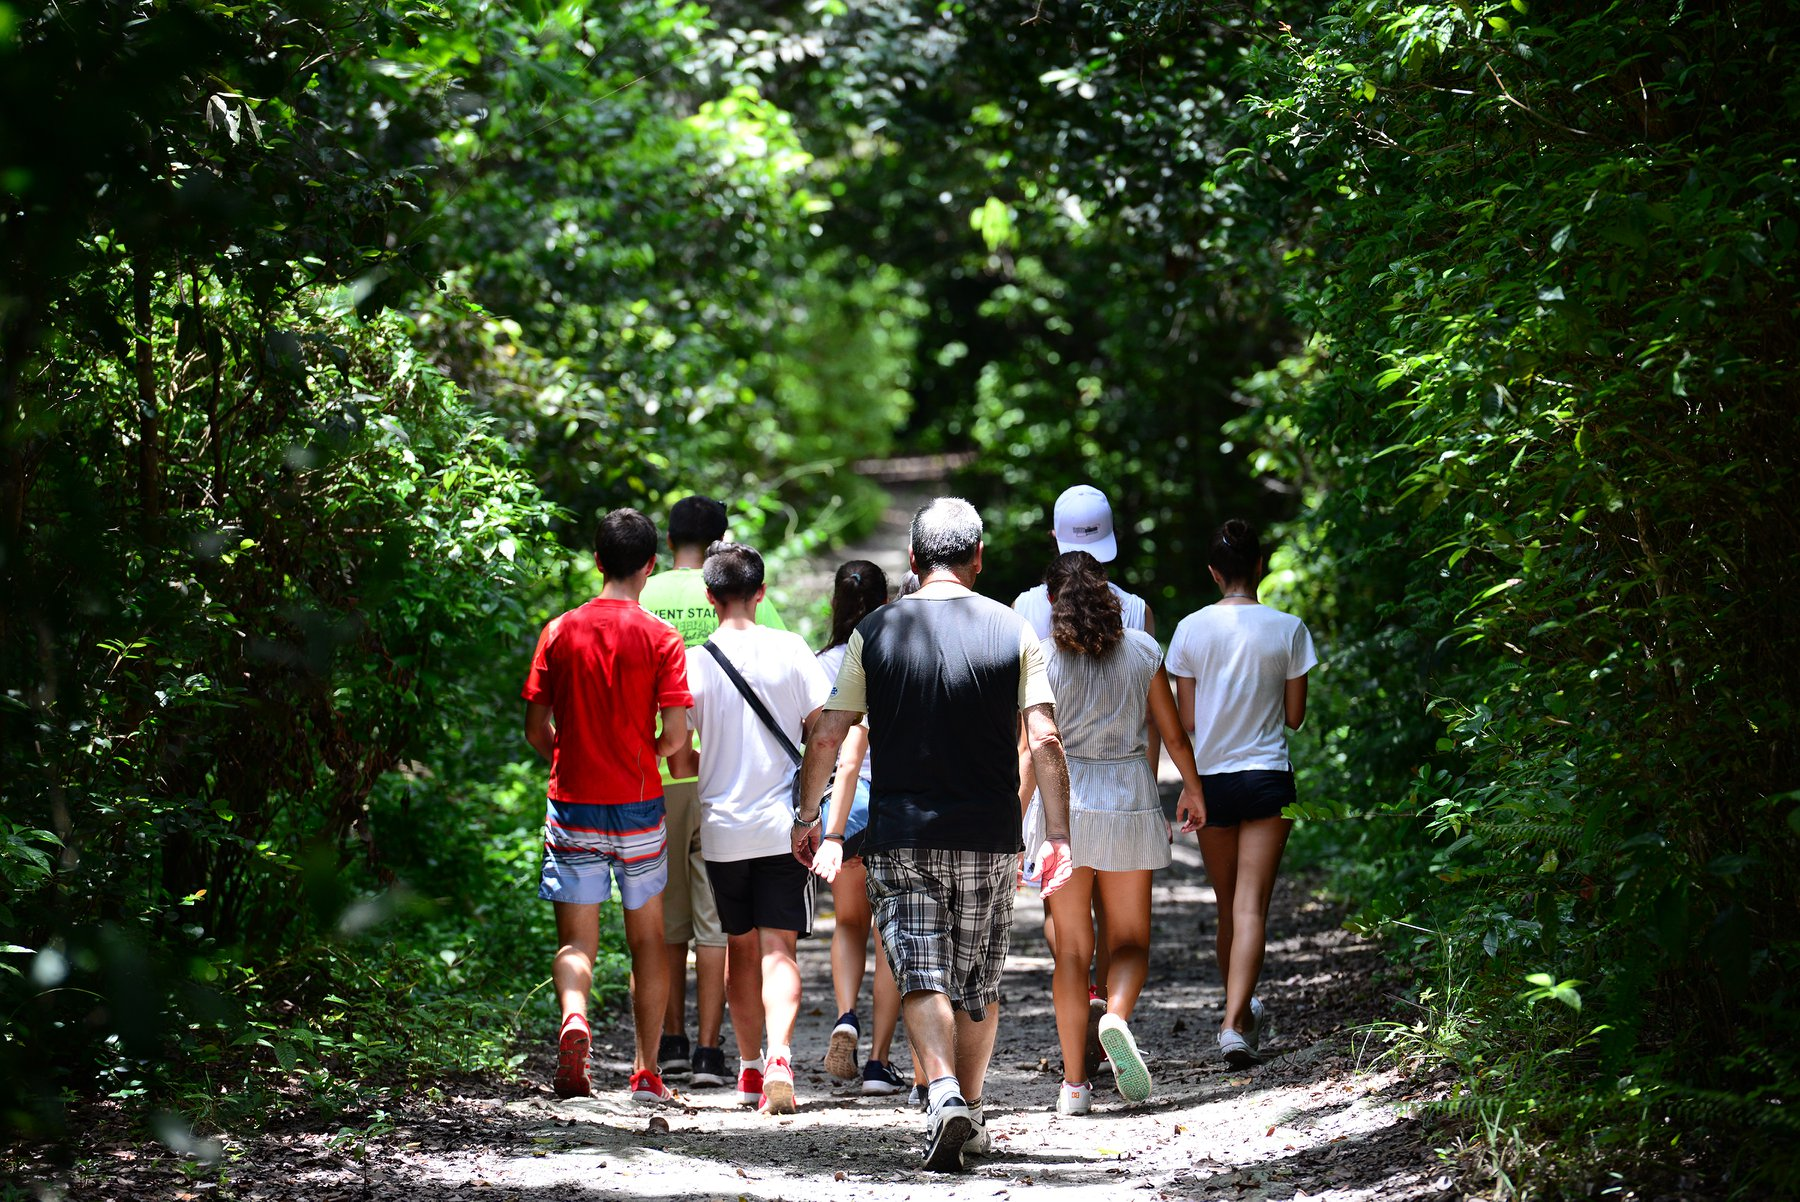 Guests on a private group hike through the natural areas of the park